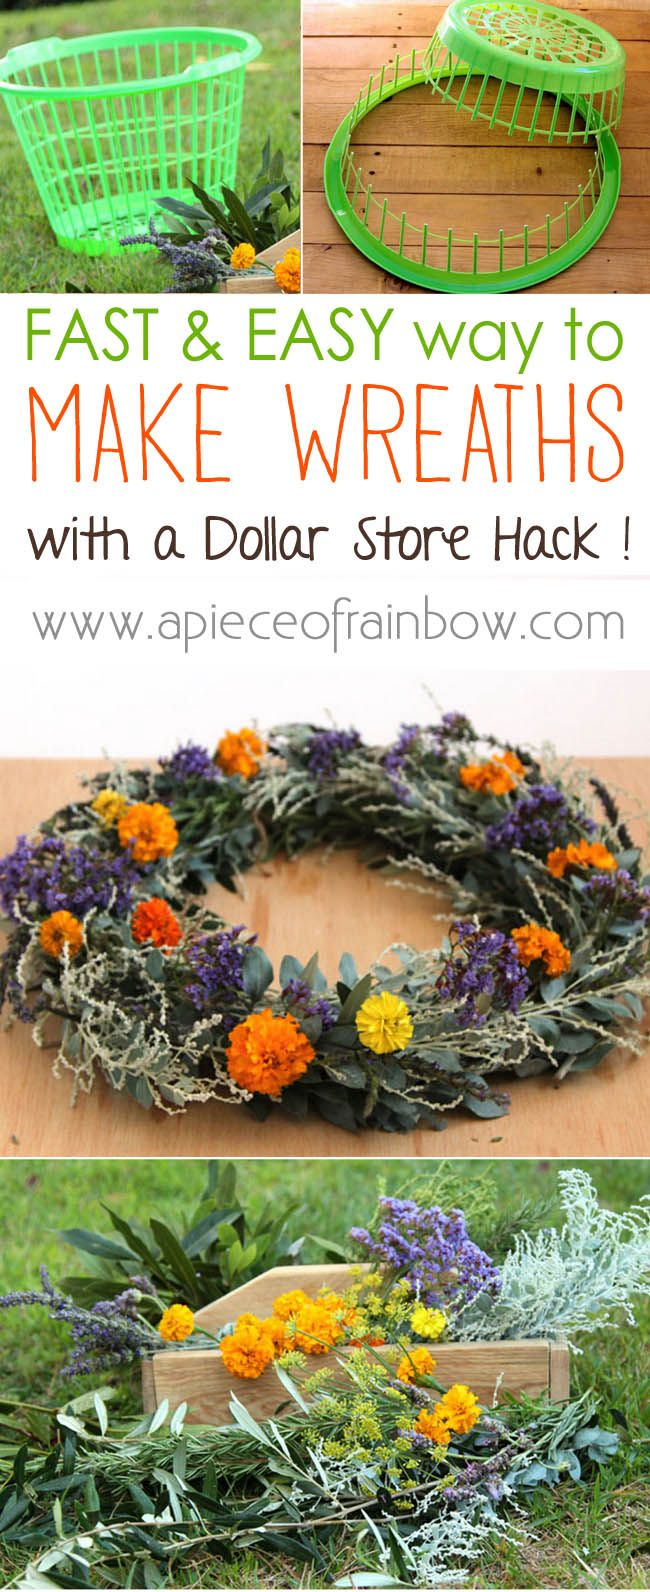 How To Make Wreath Super Fast & Easy: A Dollar Store Hack  Turn A